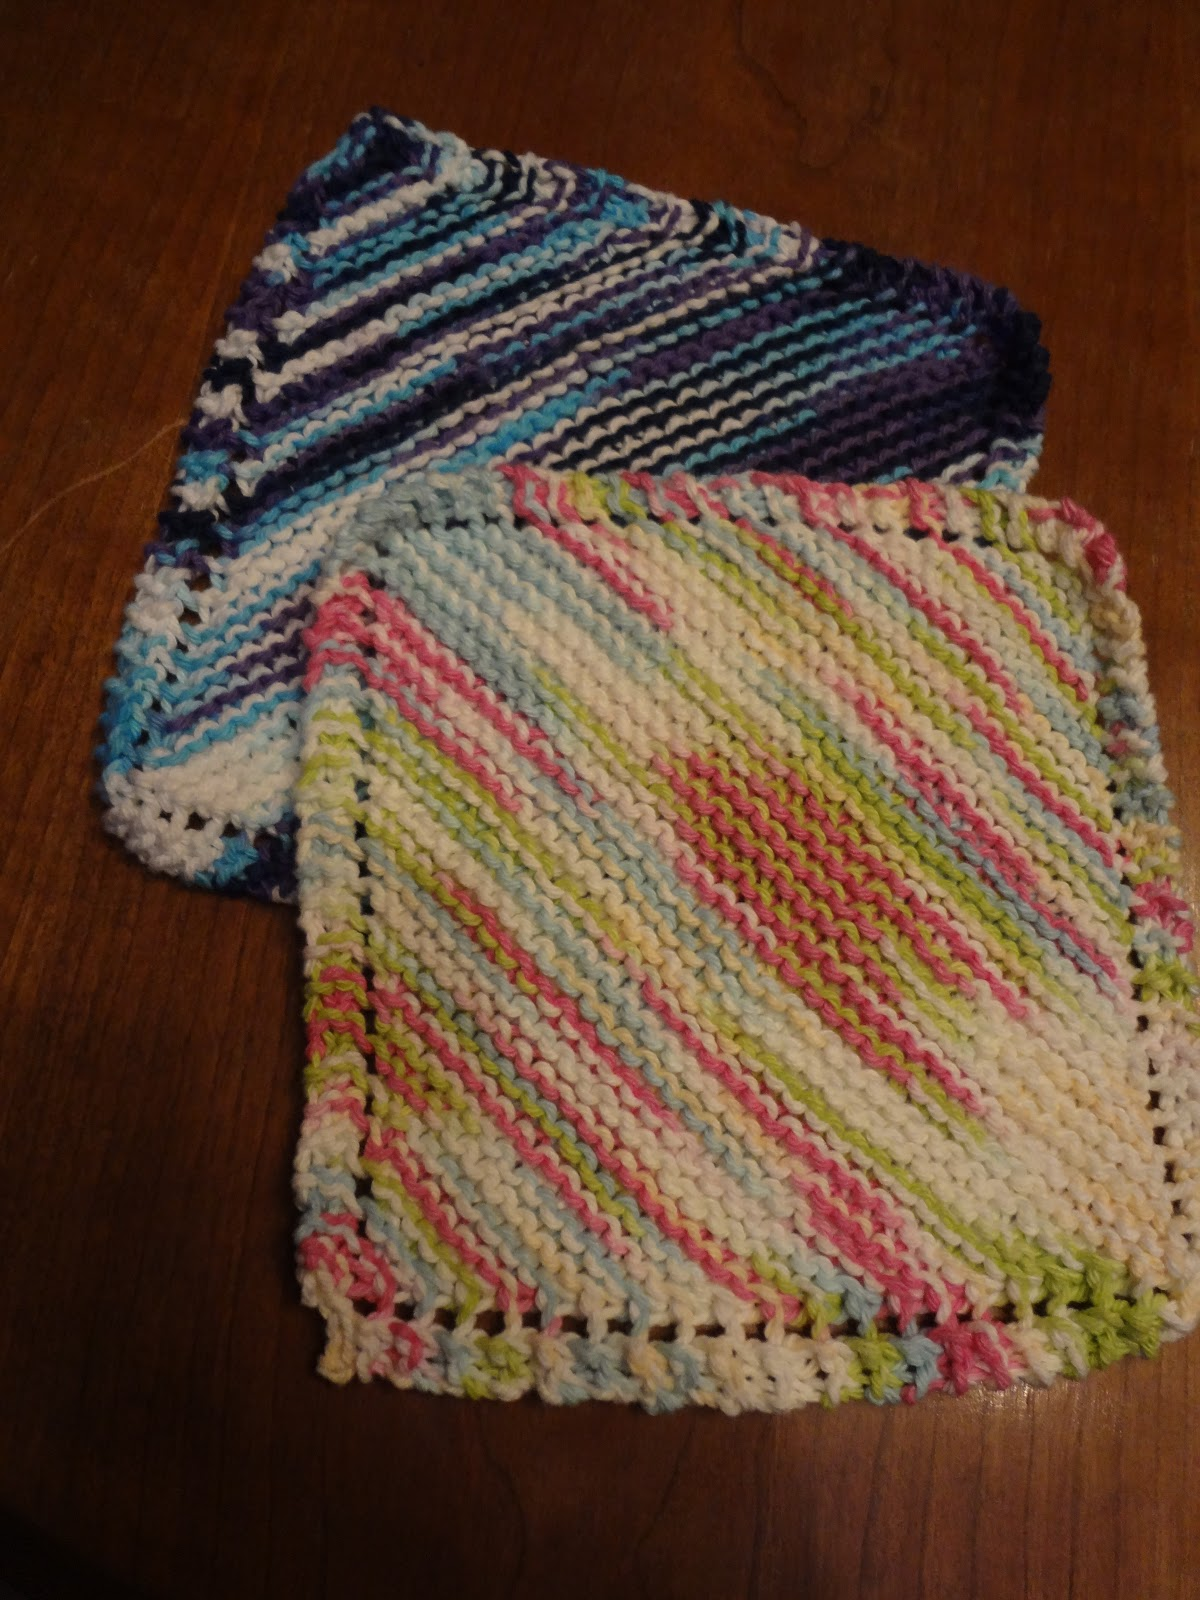 M Dishcloth Knitting Pattern : The Canadian Housewife: Knitted Dishcloths